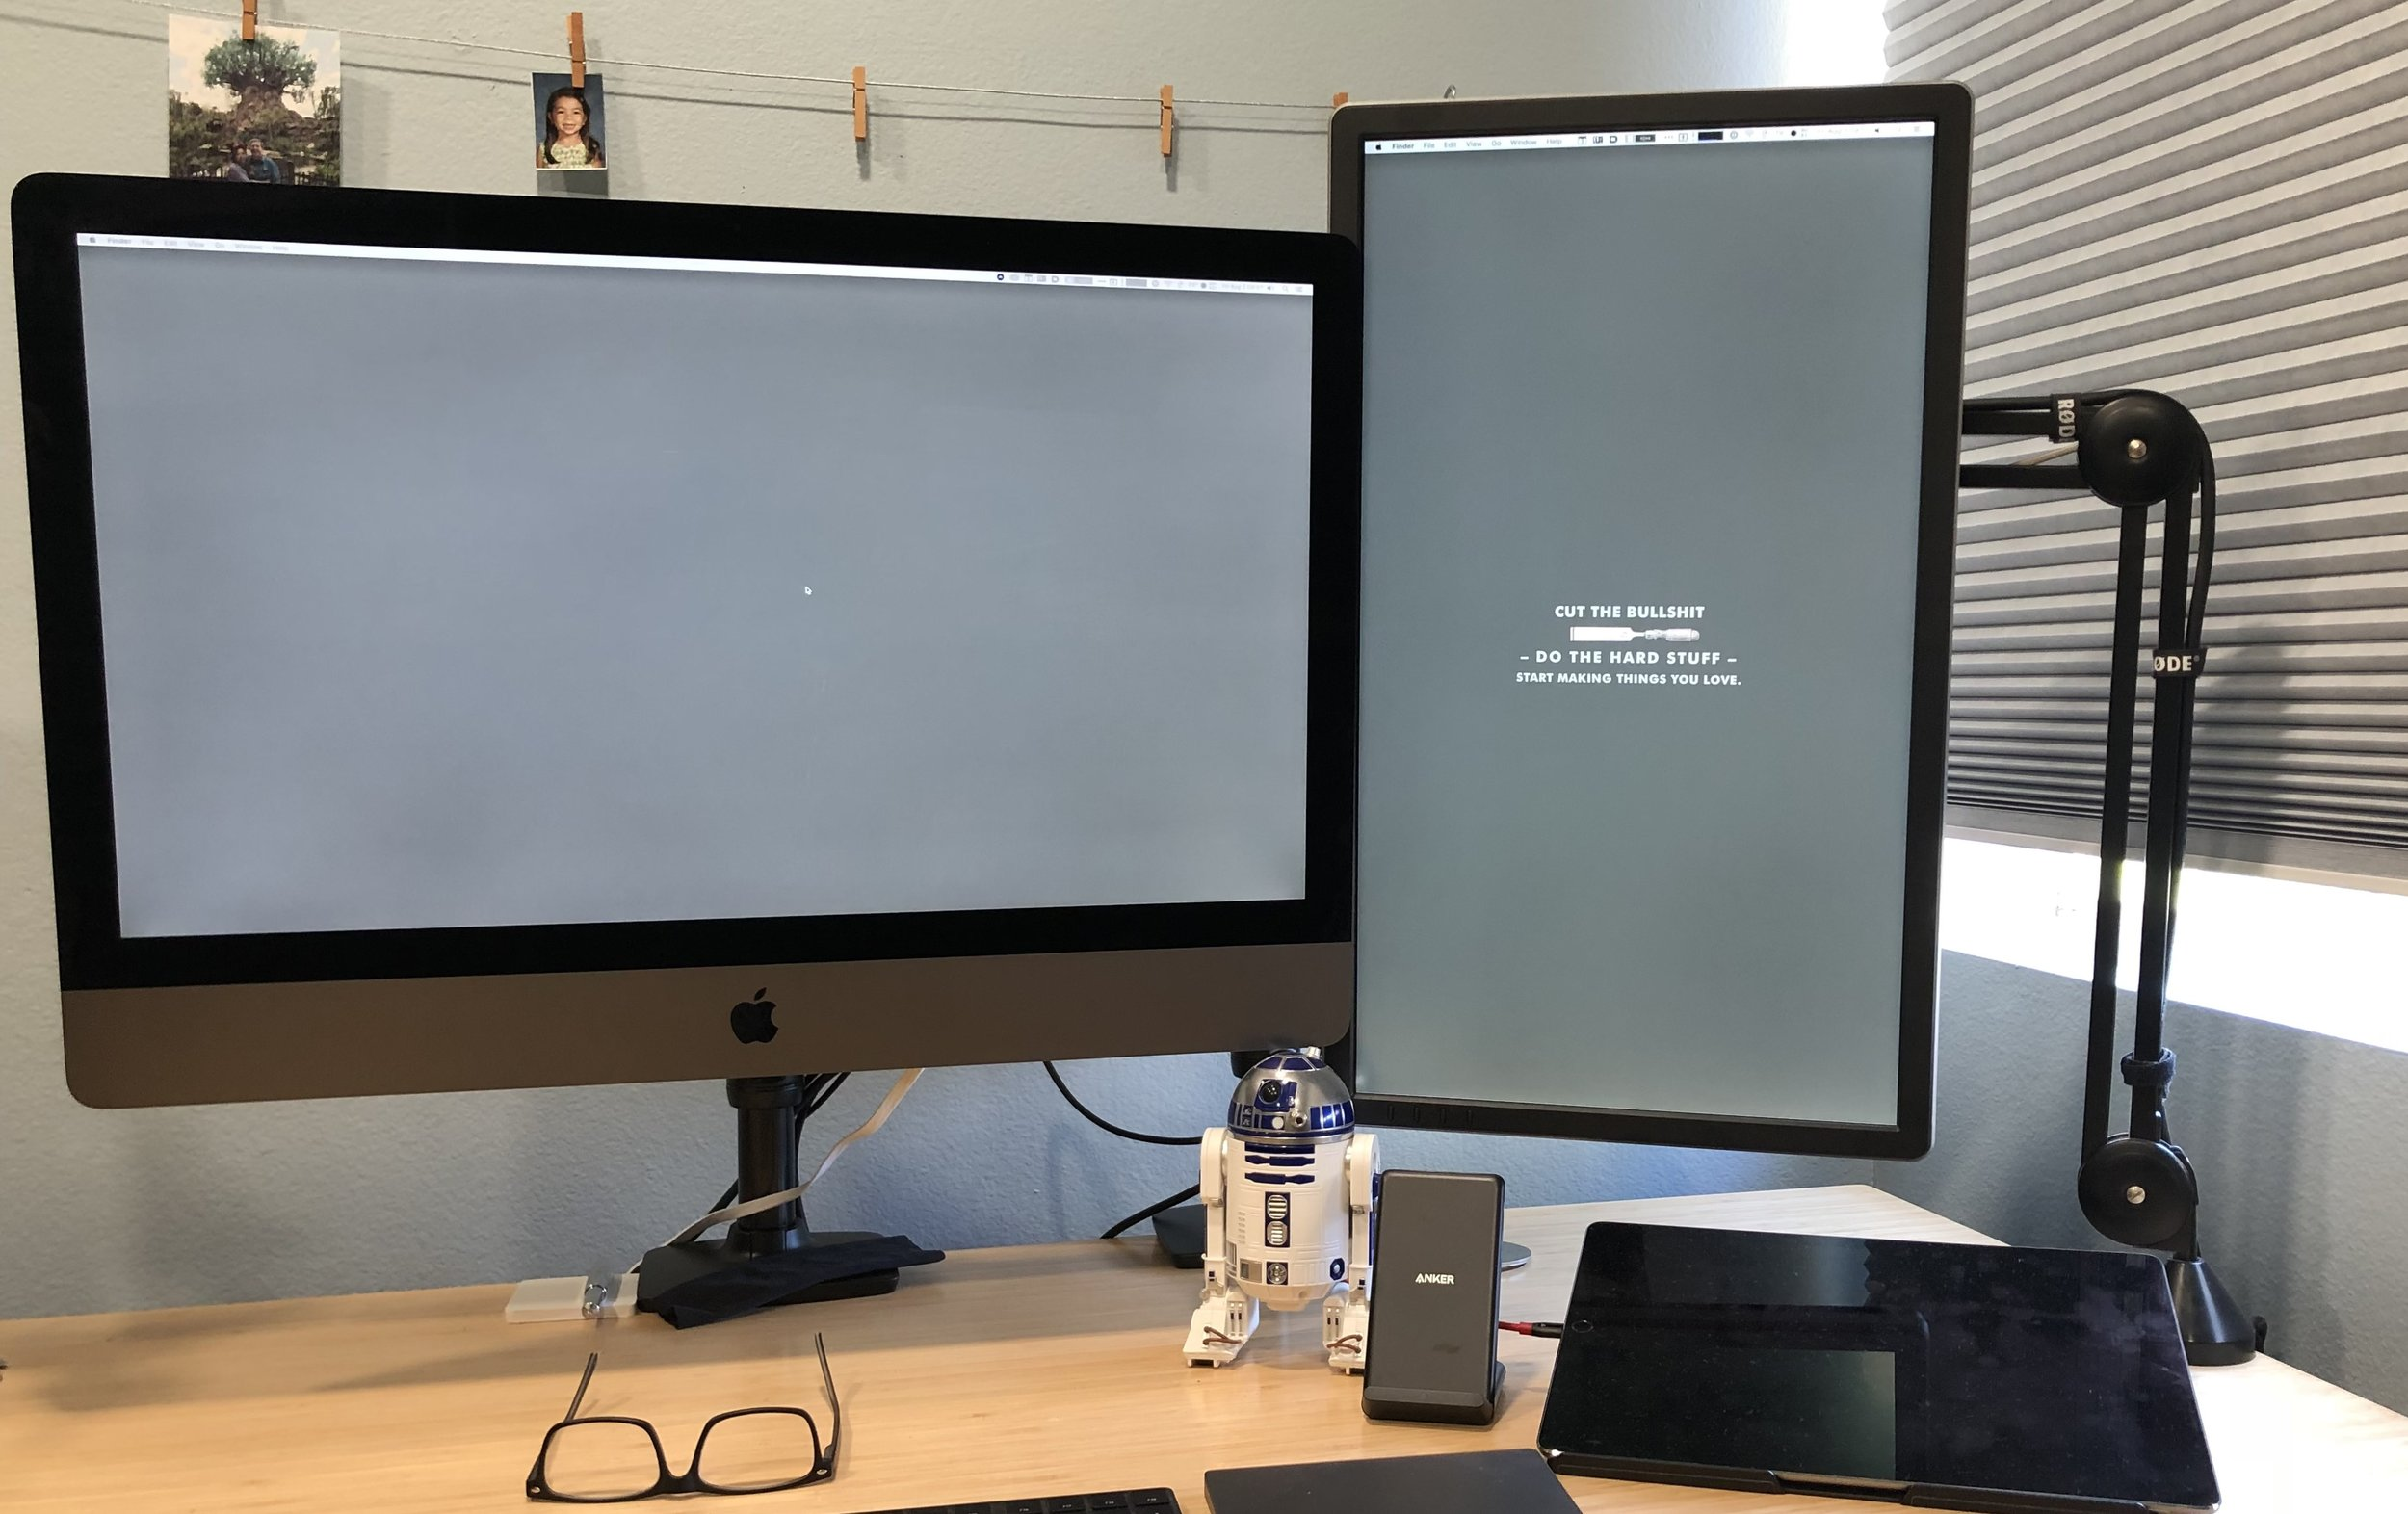 can you hook up 2 monitors to imac